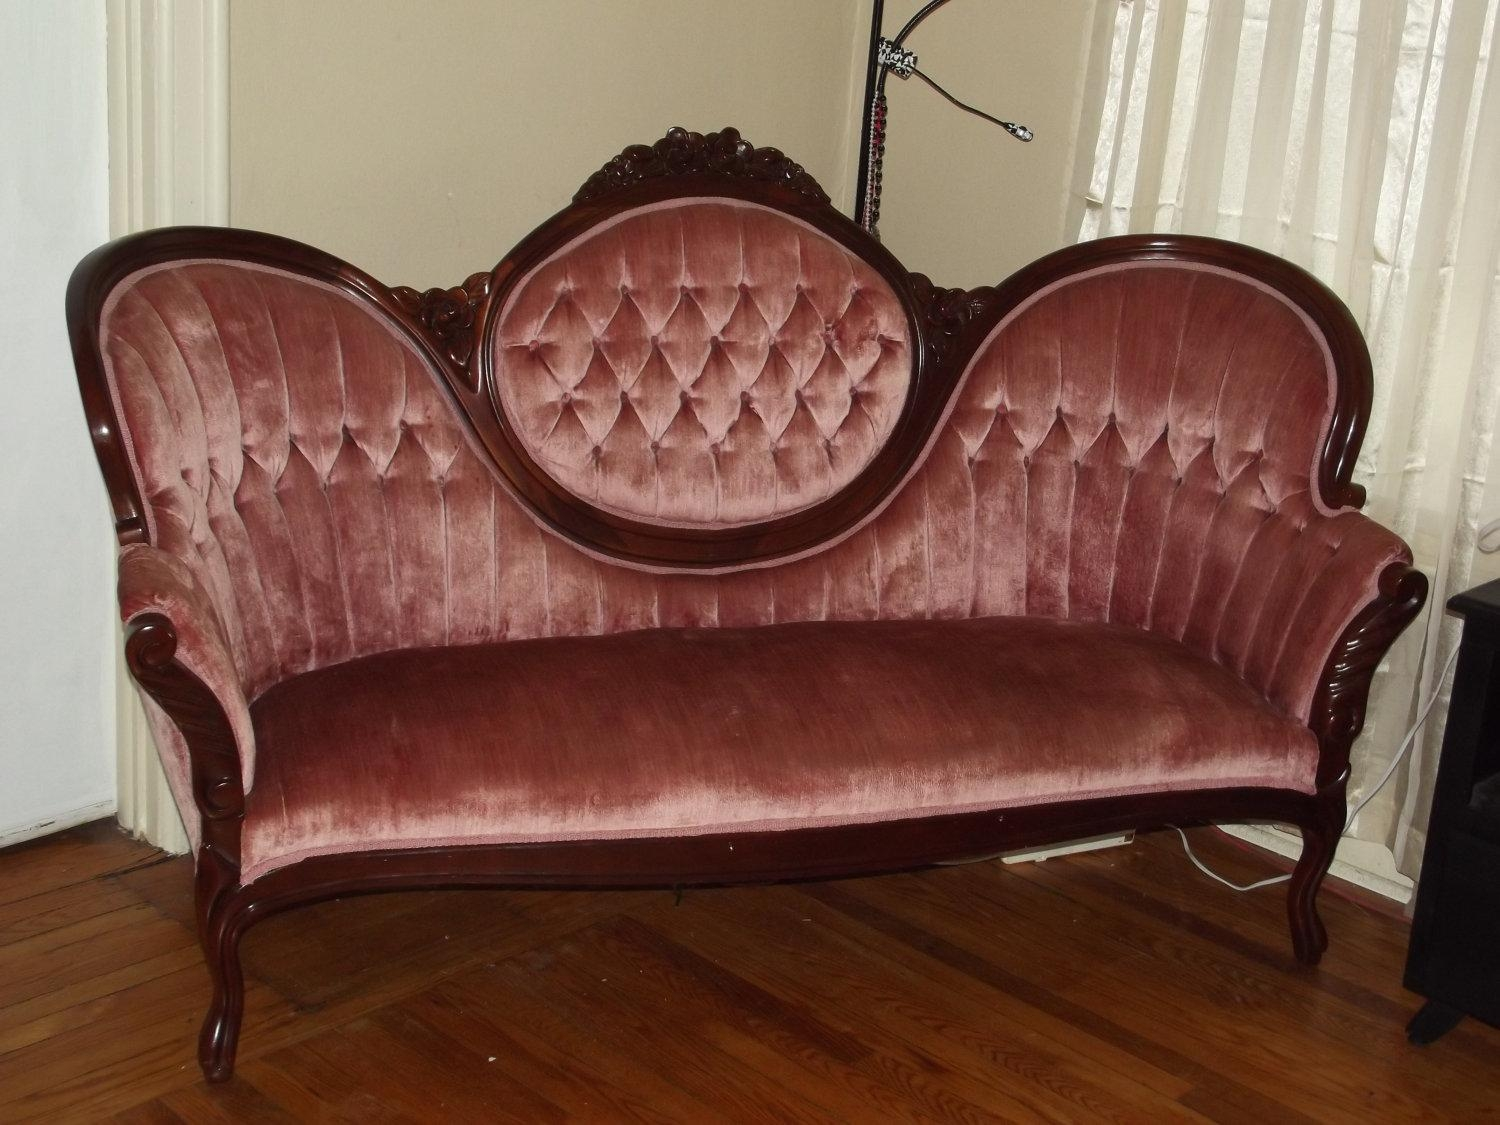 Vintage sofa styles oned chesterfield sofa antique brown thesofa Antique loveseat styles